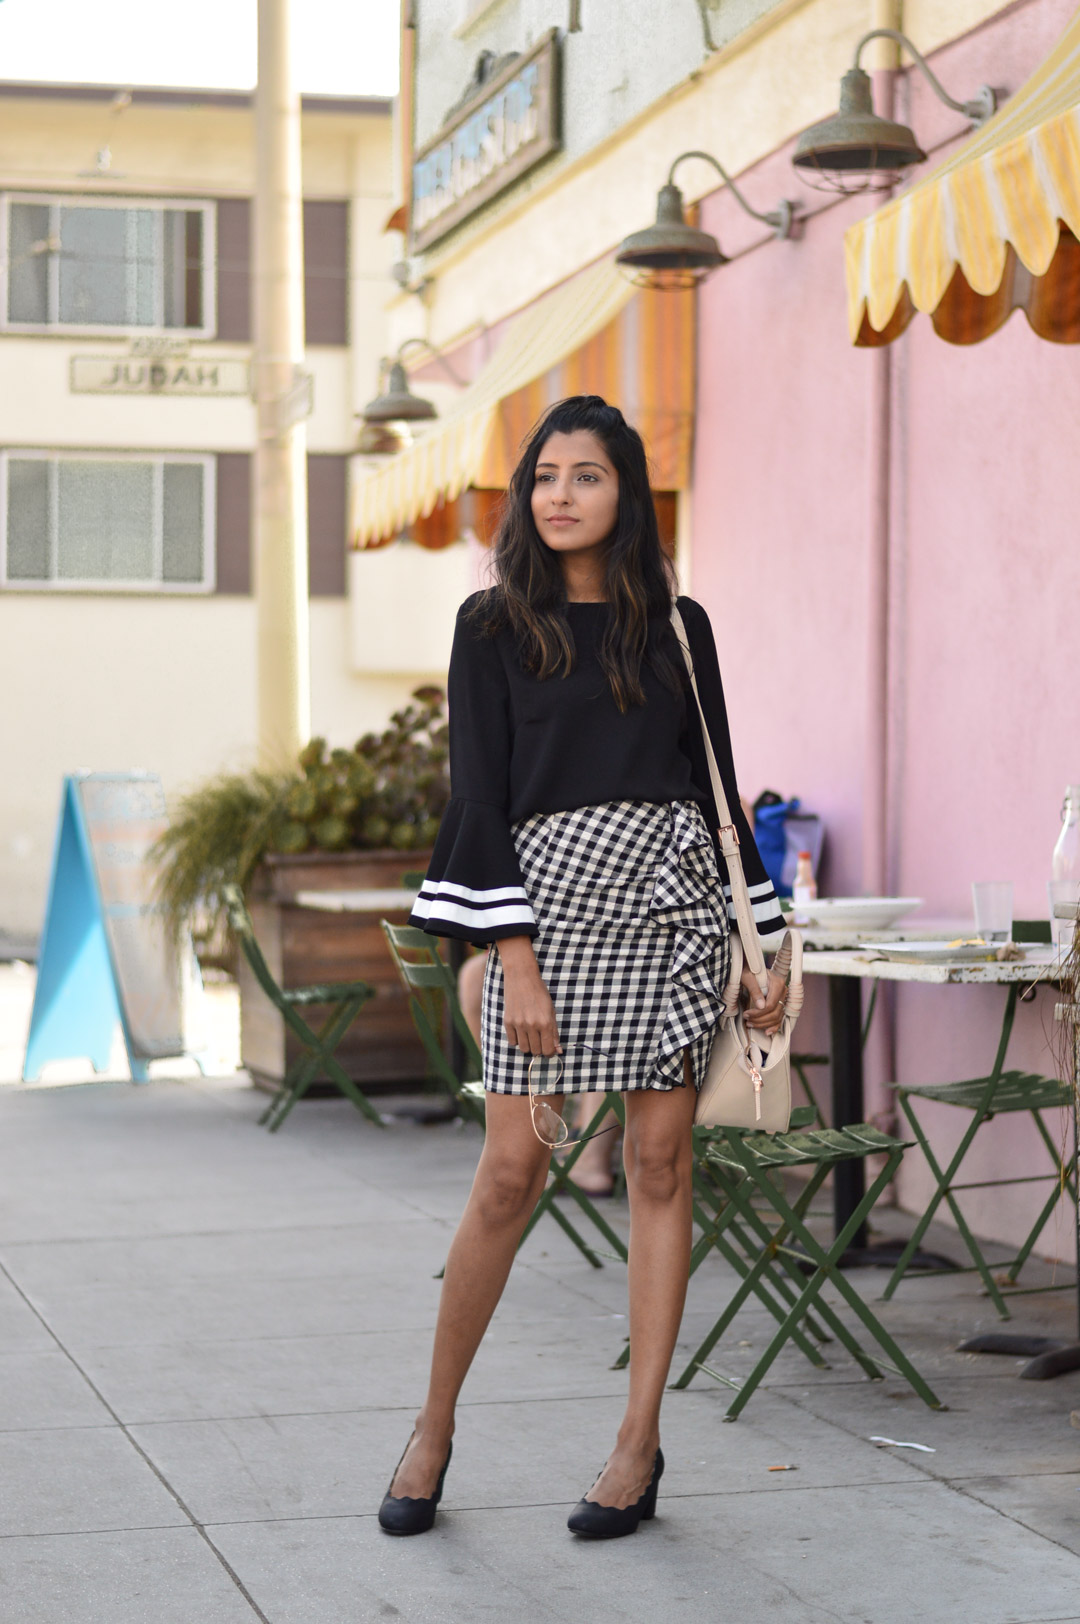 bell-sleeves-gingham-ruffles-transition-style-blogger-outfit 1